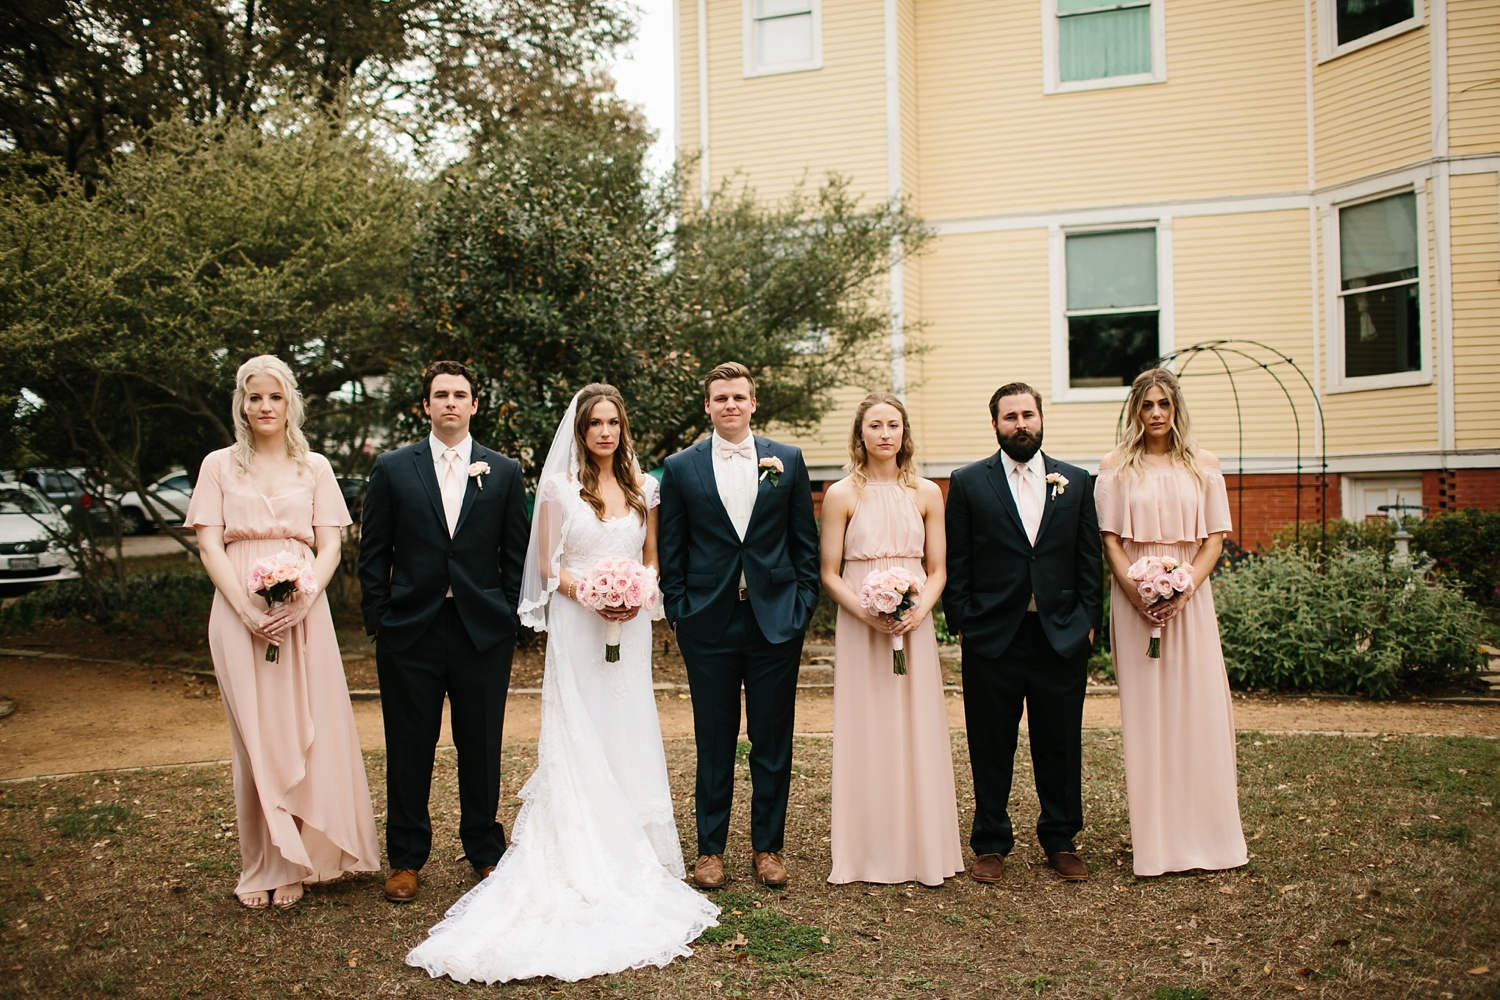 Amber + Daniel an intimate, simple, spring ceremony at Heard Craig Center and reception at Gather in McKinney, Texas by North Texas Wedding Photographer Rachel Meagan Photography 073